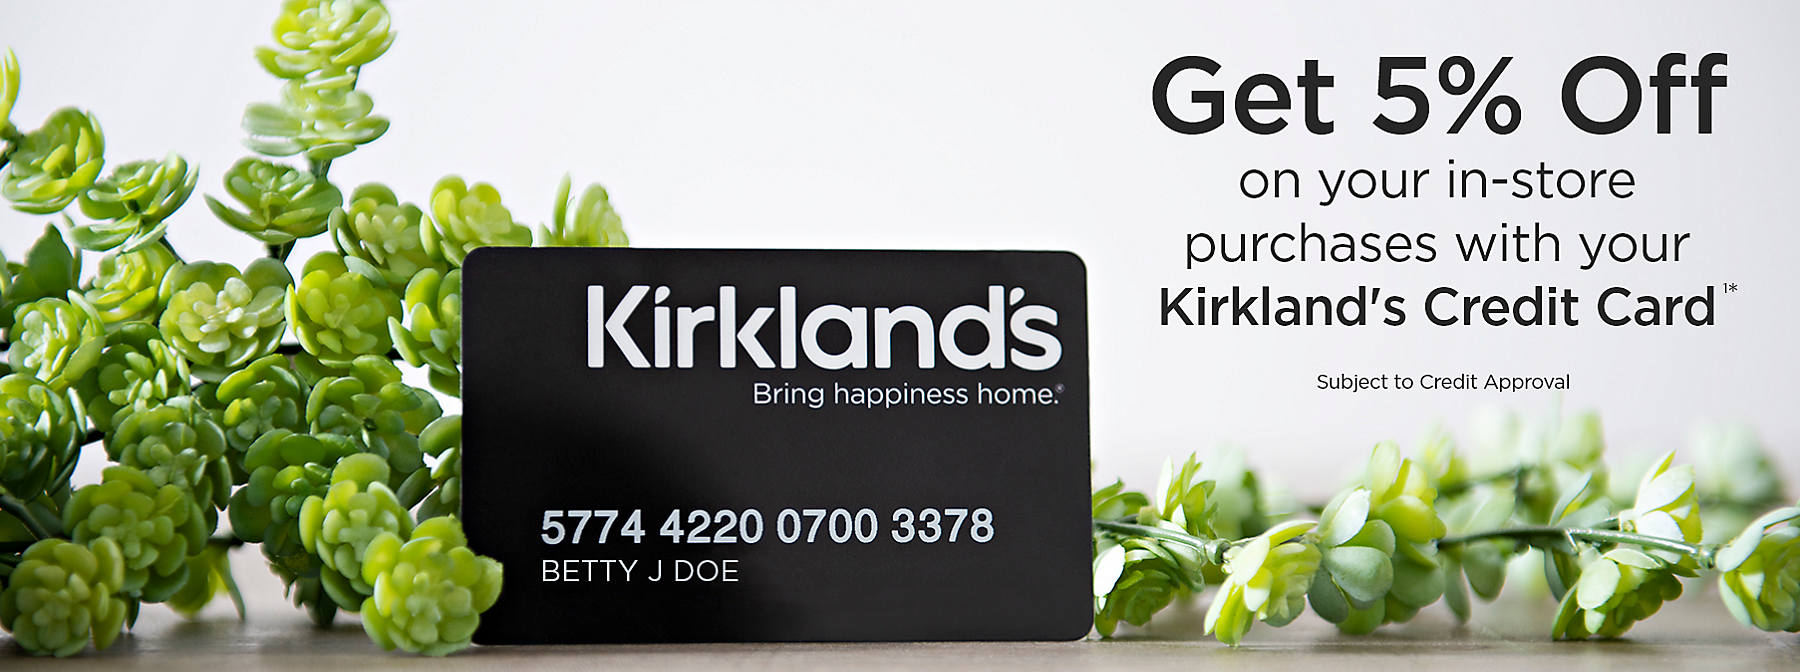 Save 5% on your in-store purchases with your Kirkland's Credit Card